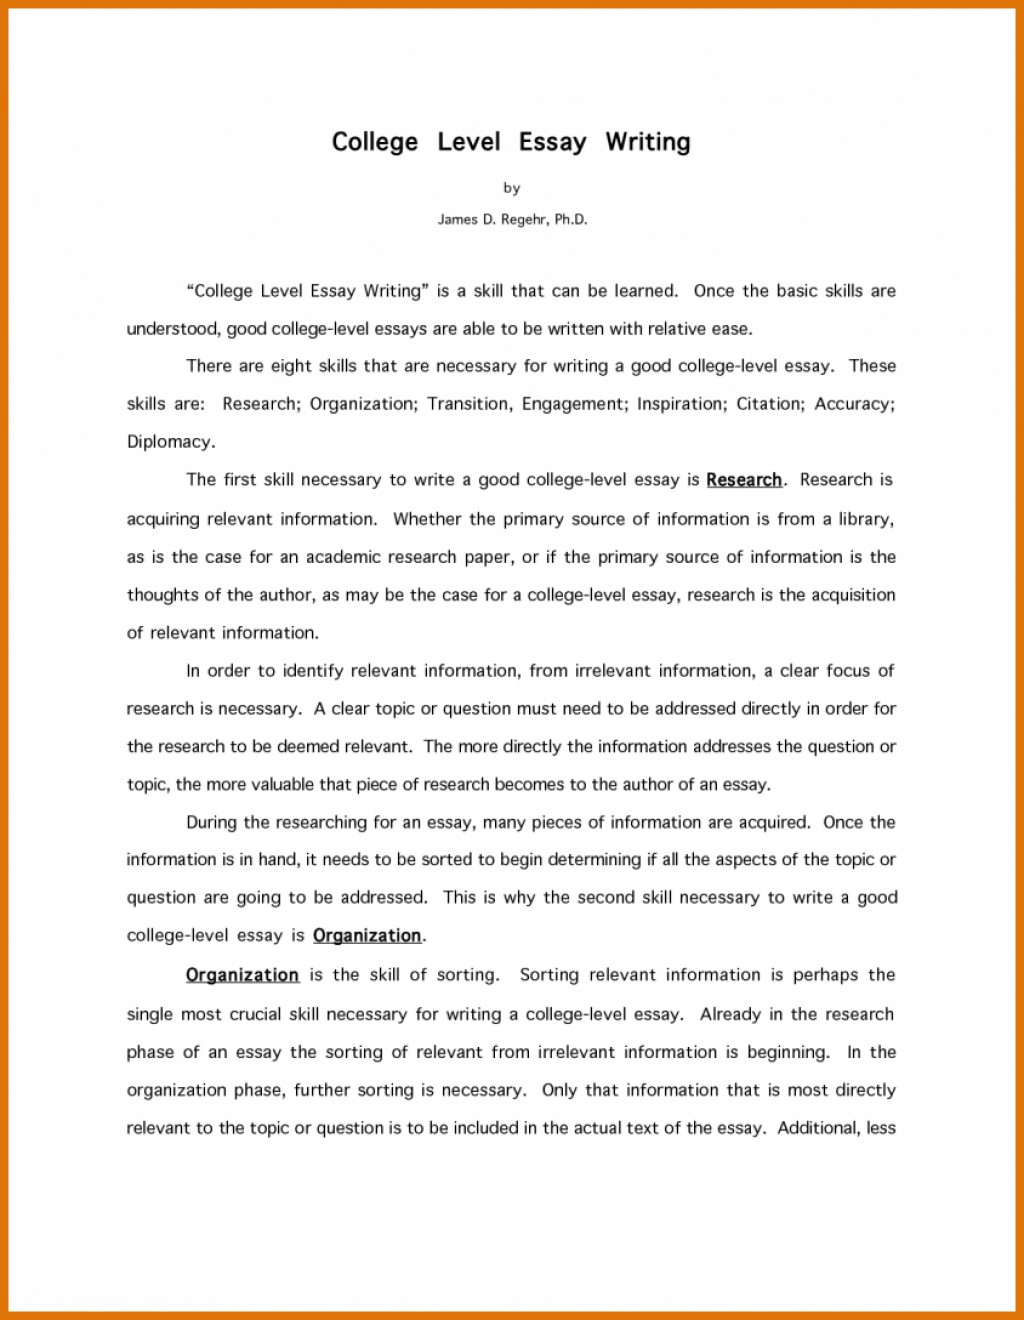 019 Example Of College Persuasive Essay Isipingo Secondary Best Way To Write Lev Level How Introduction Tips For Writing Outline Steps Do Exceptional Examples Argumentative Topics Large